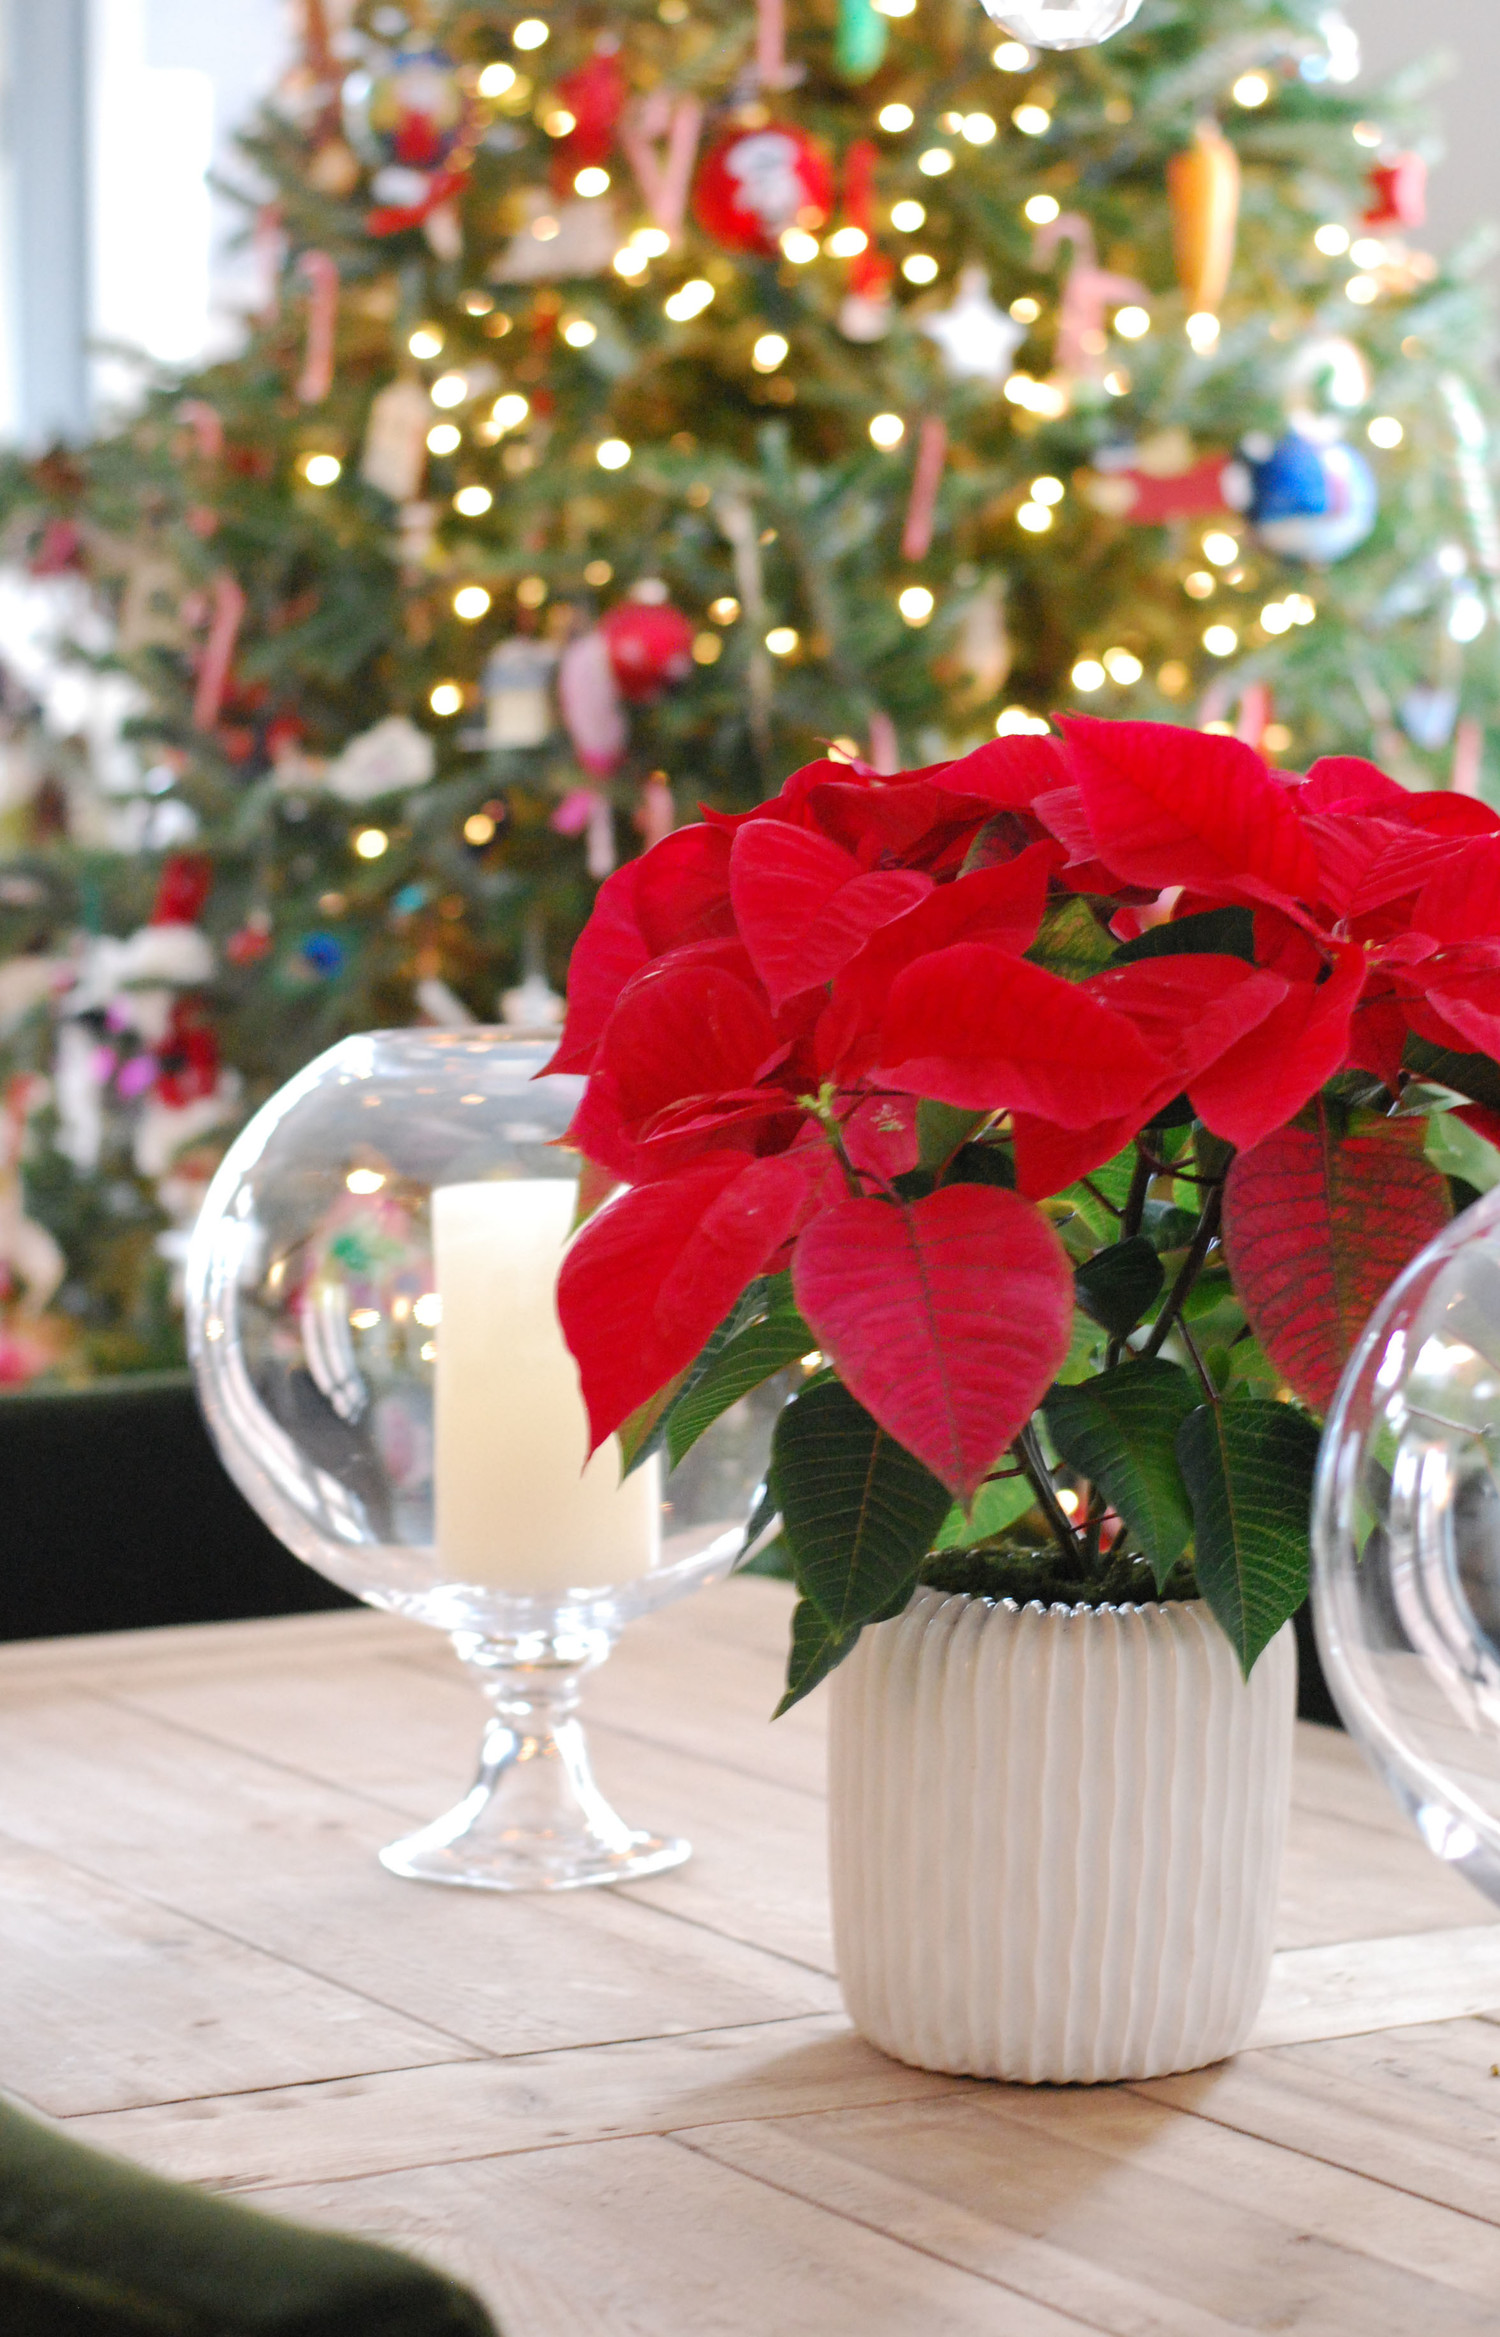 10 Festive (But Not Fussy) Ways To Decorate With Plants